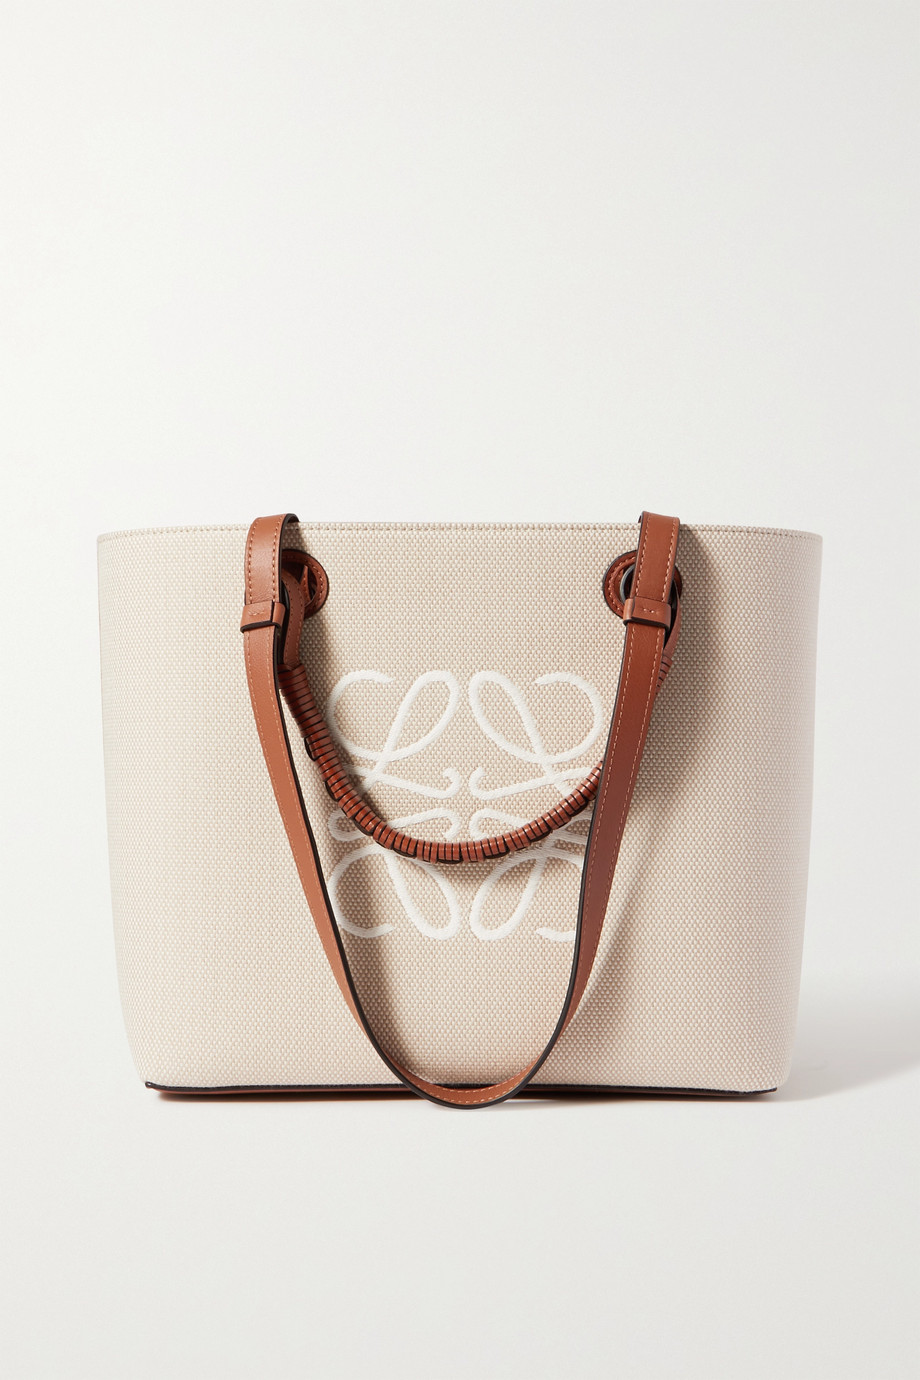 LOEWE Anagram small leather-trimmed embroidered canvas tote